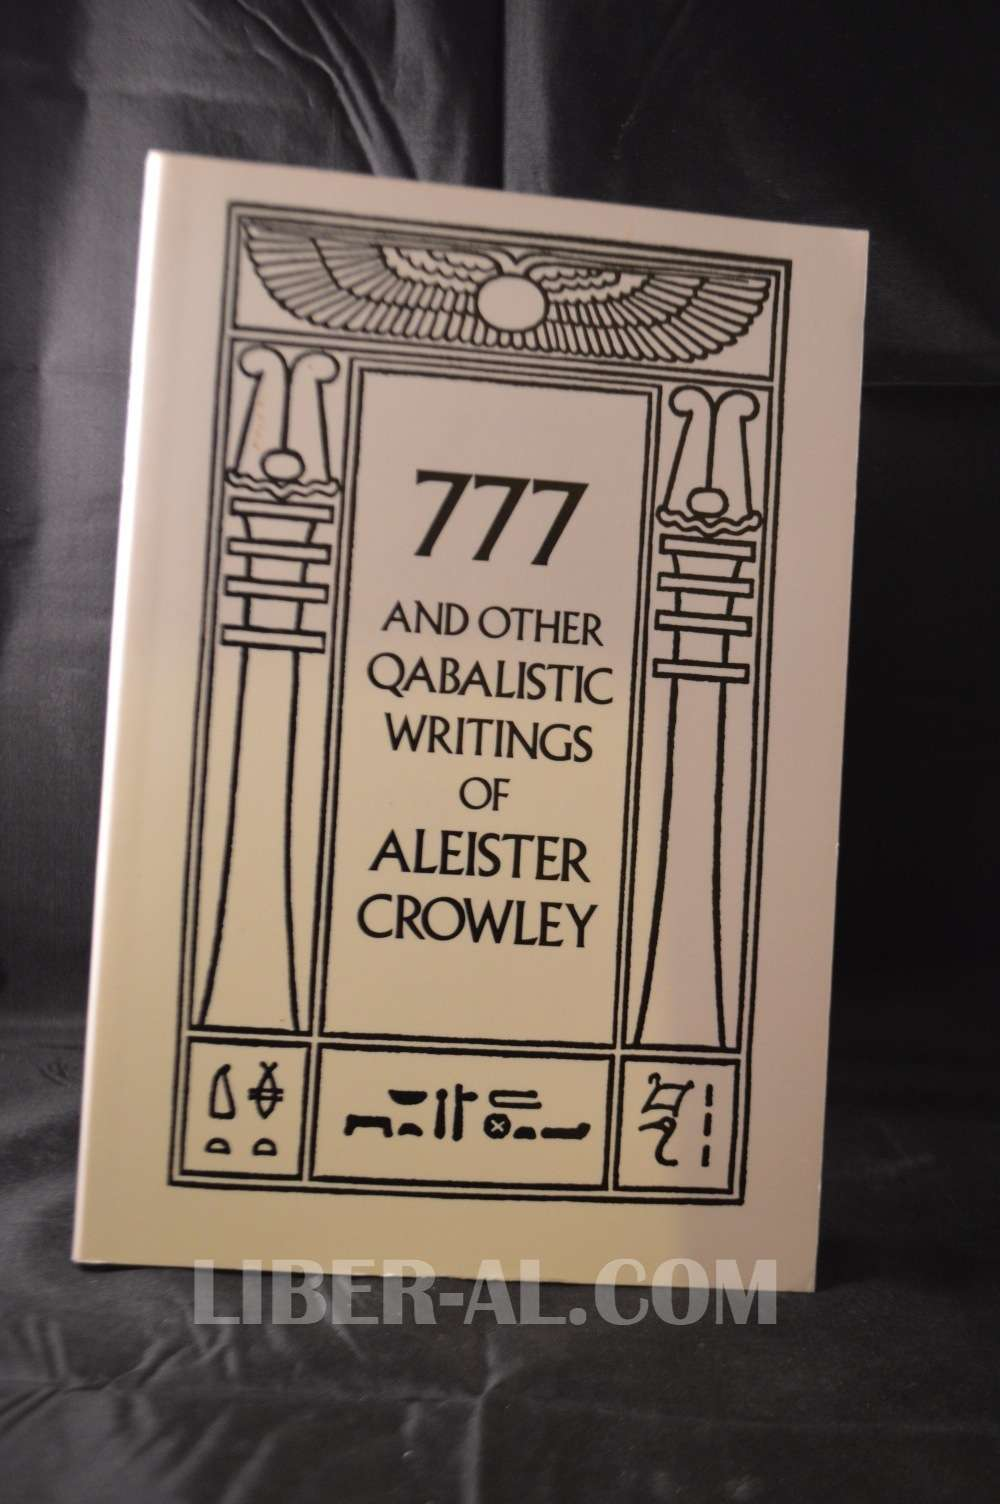 crowley gematria essay Includes qabalistic dogma (previously in crowley's collected works) and an essay upon number this e-text restores some parts of the original publication omitted when it was included in the qabalah of aleister crowley (aka 777 and other qabalistic writings under the spurious title gematria.